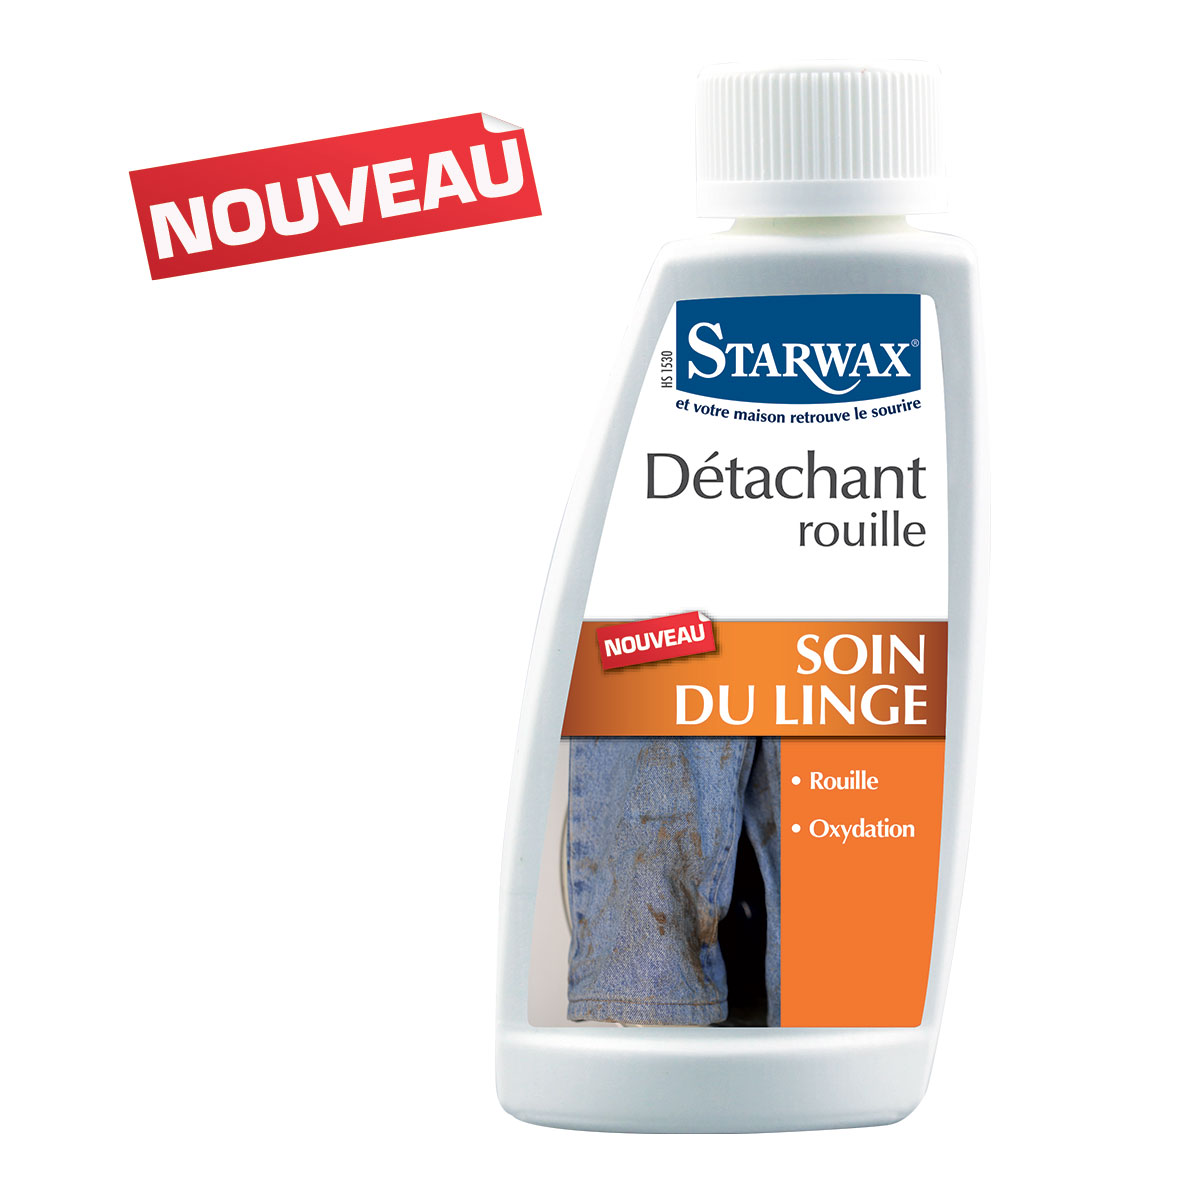 Detachant rouille